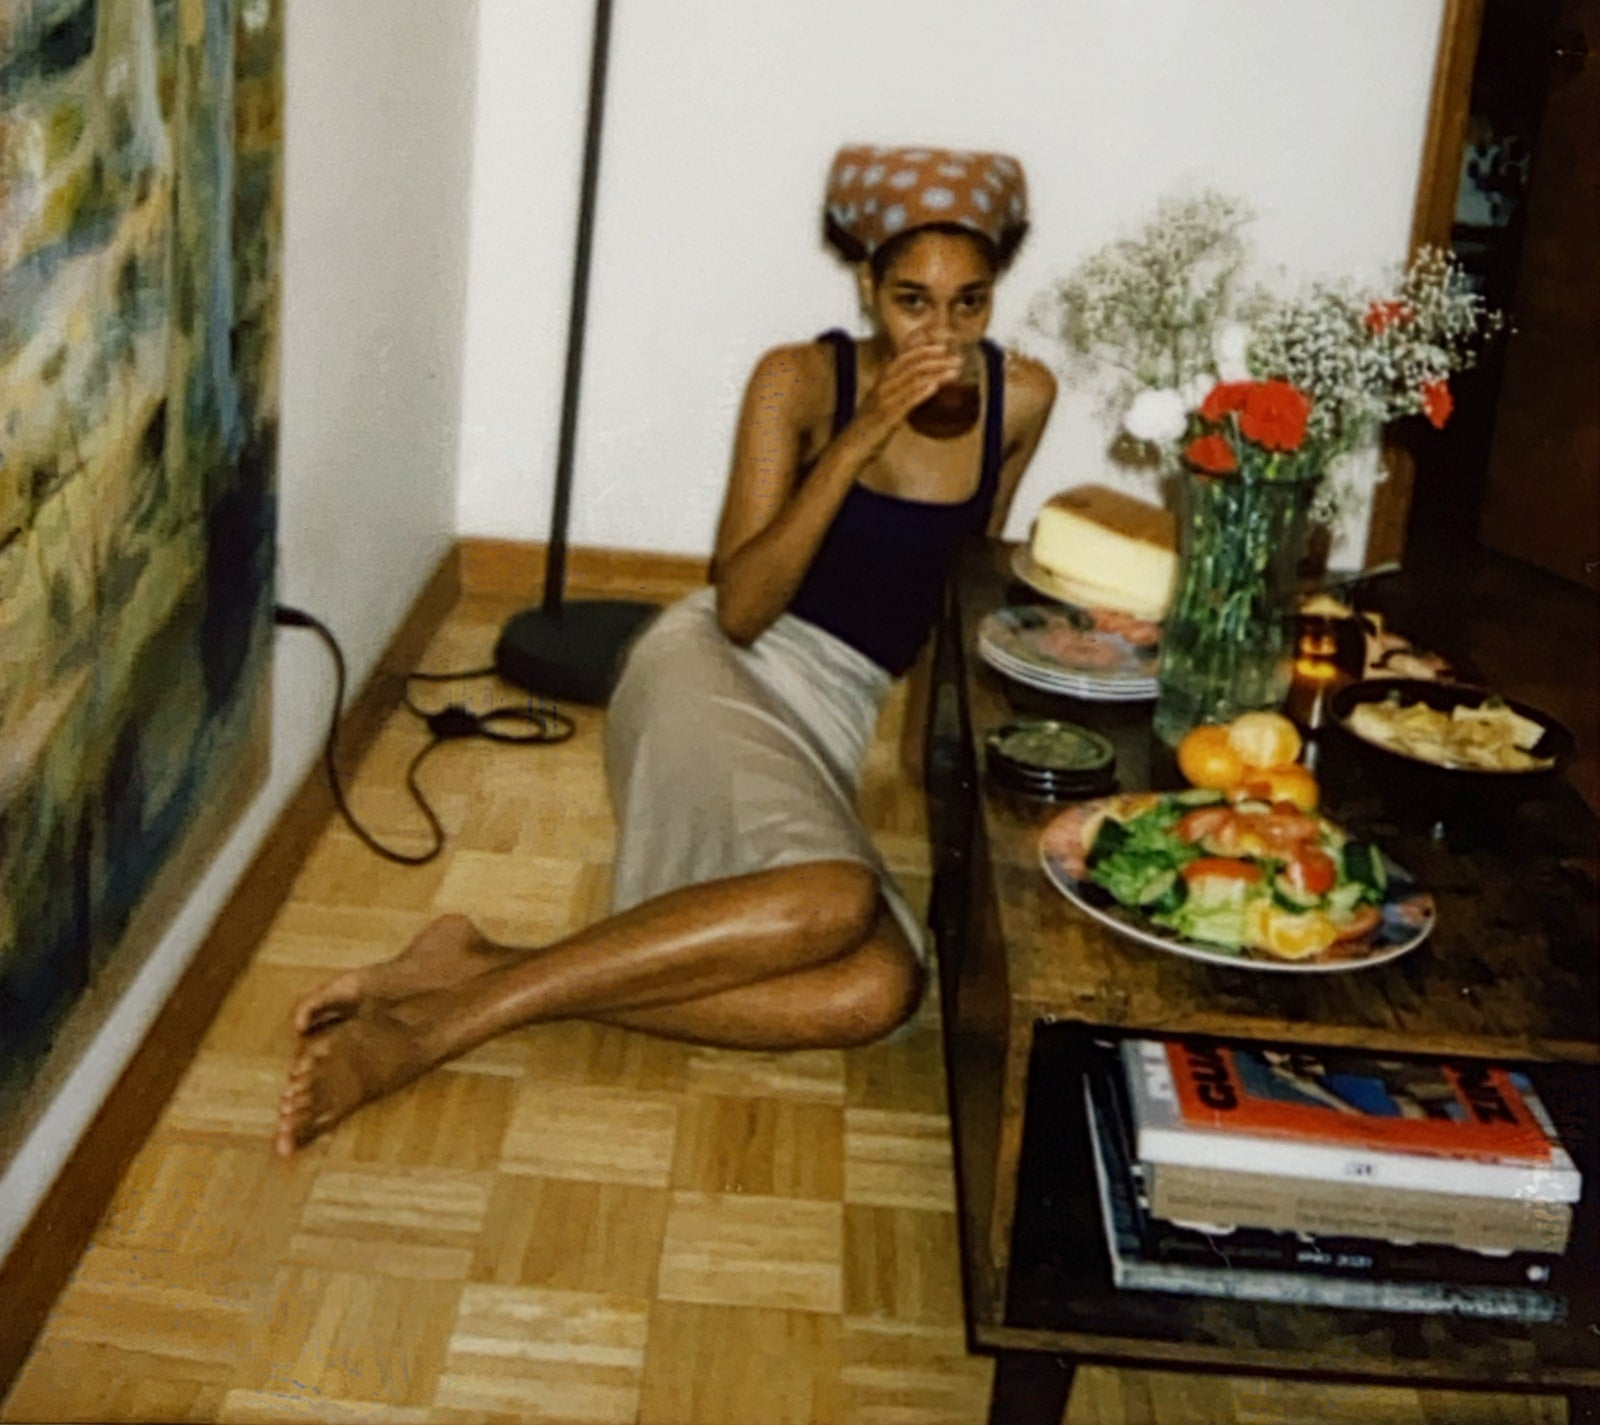 Michelle with food and drink